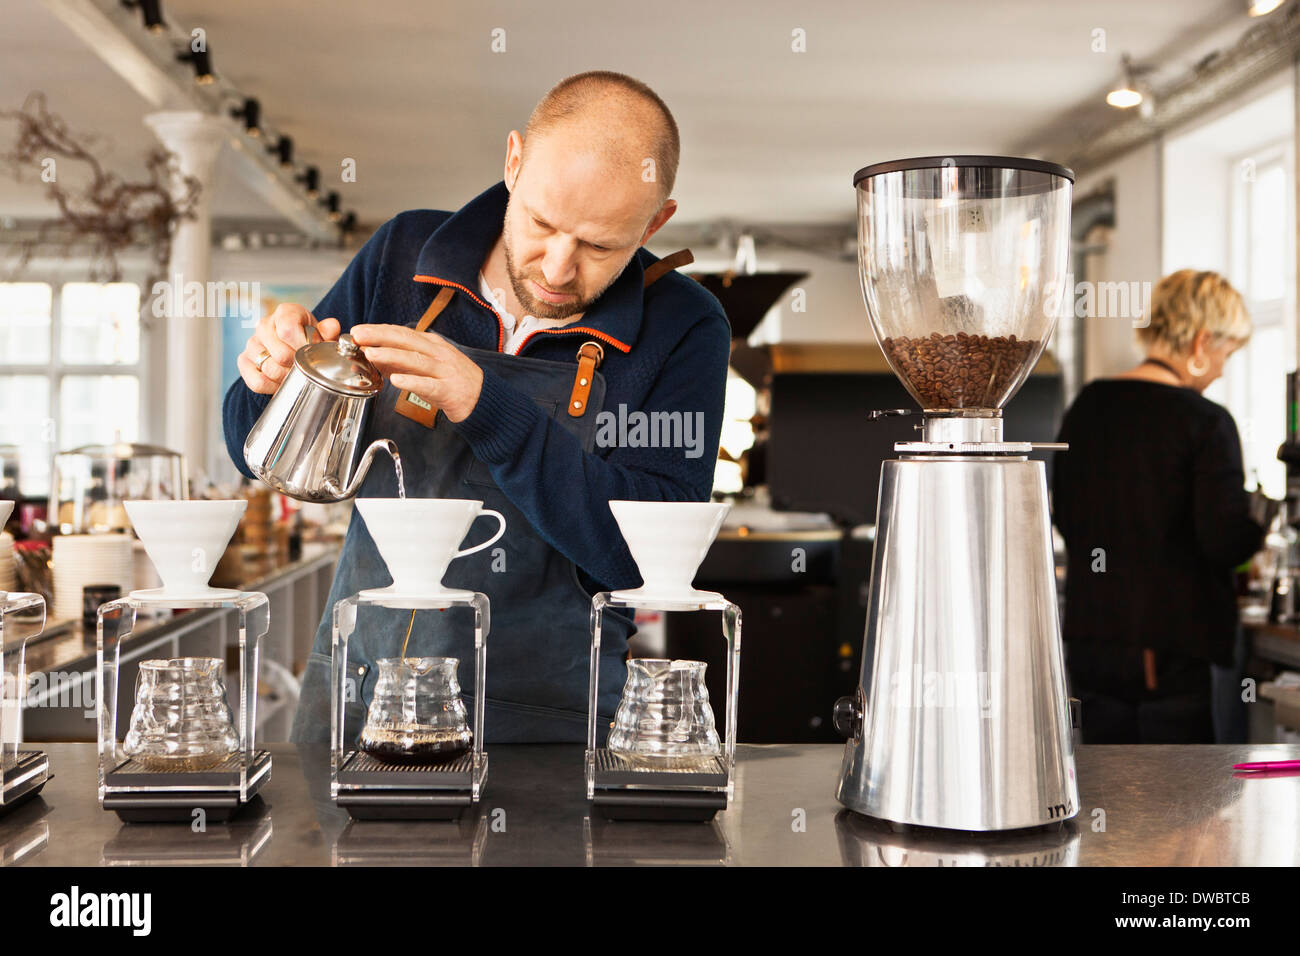 Barista pouring boiling water into coffee filters Stock Photo